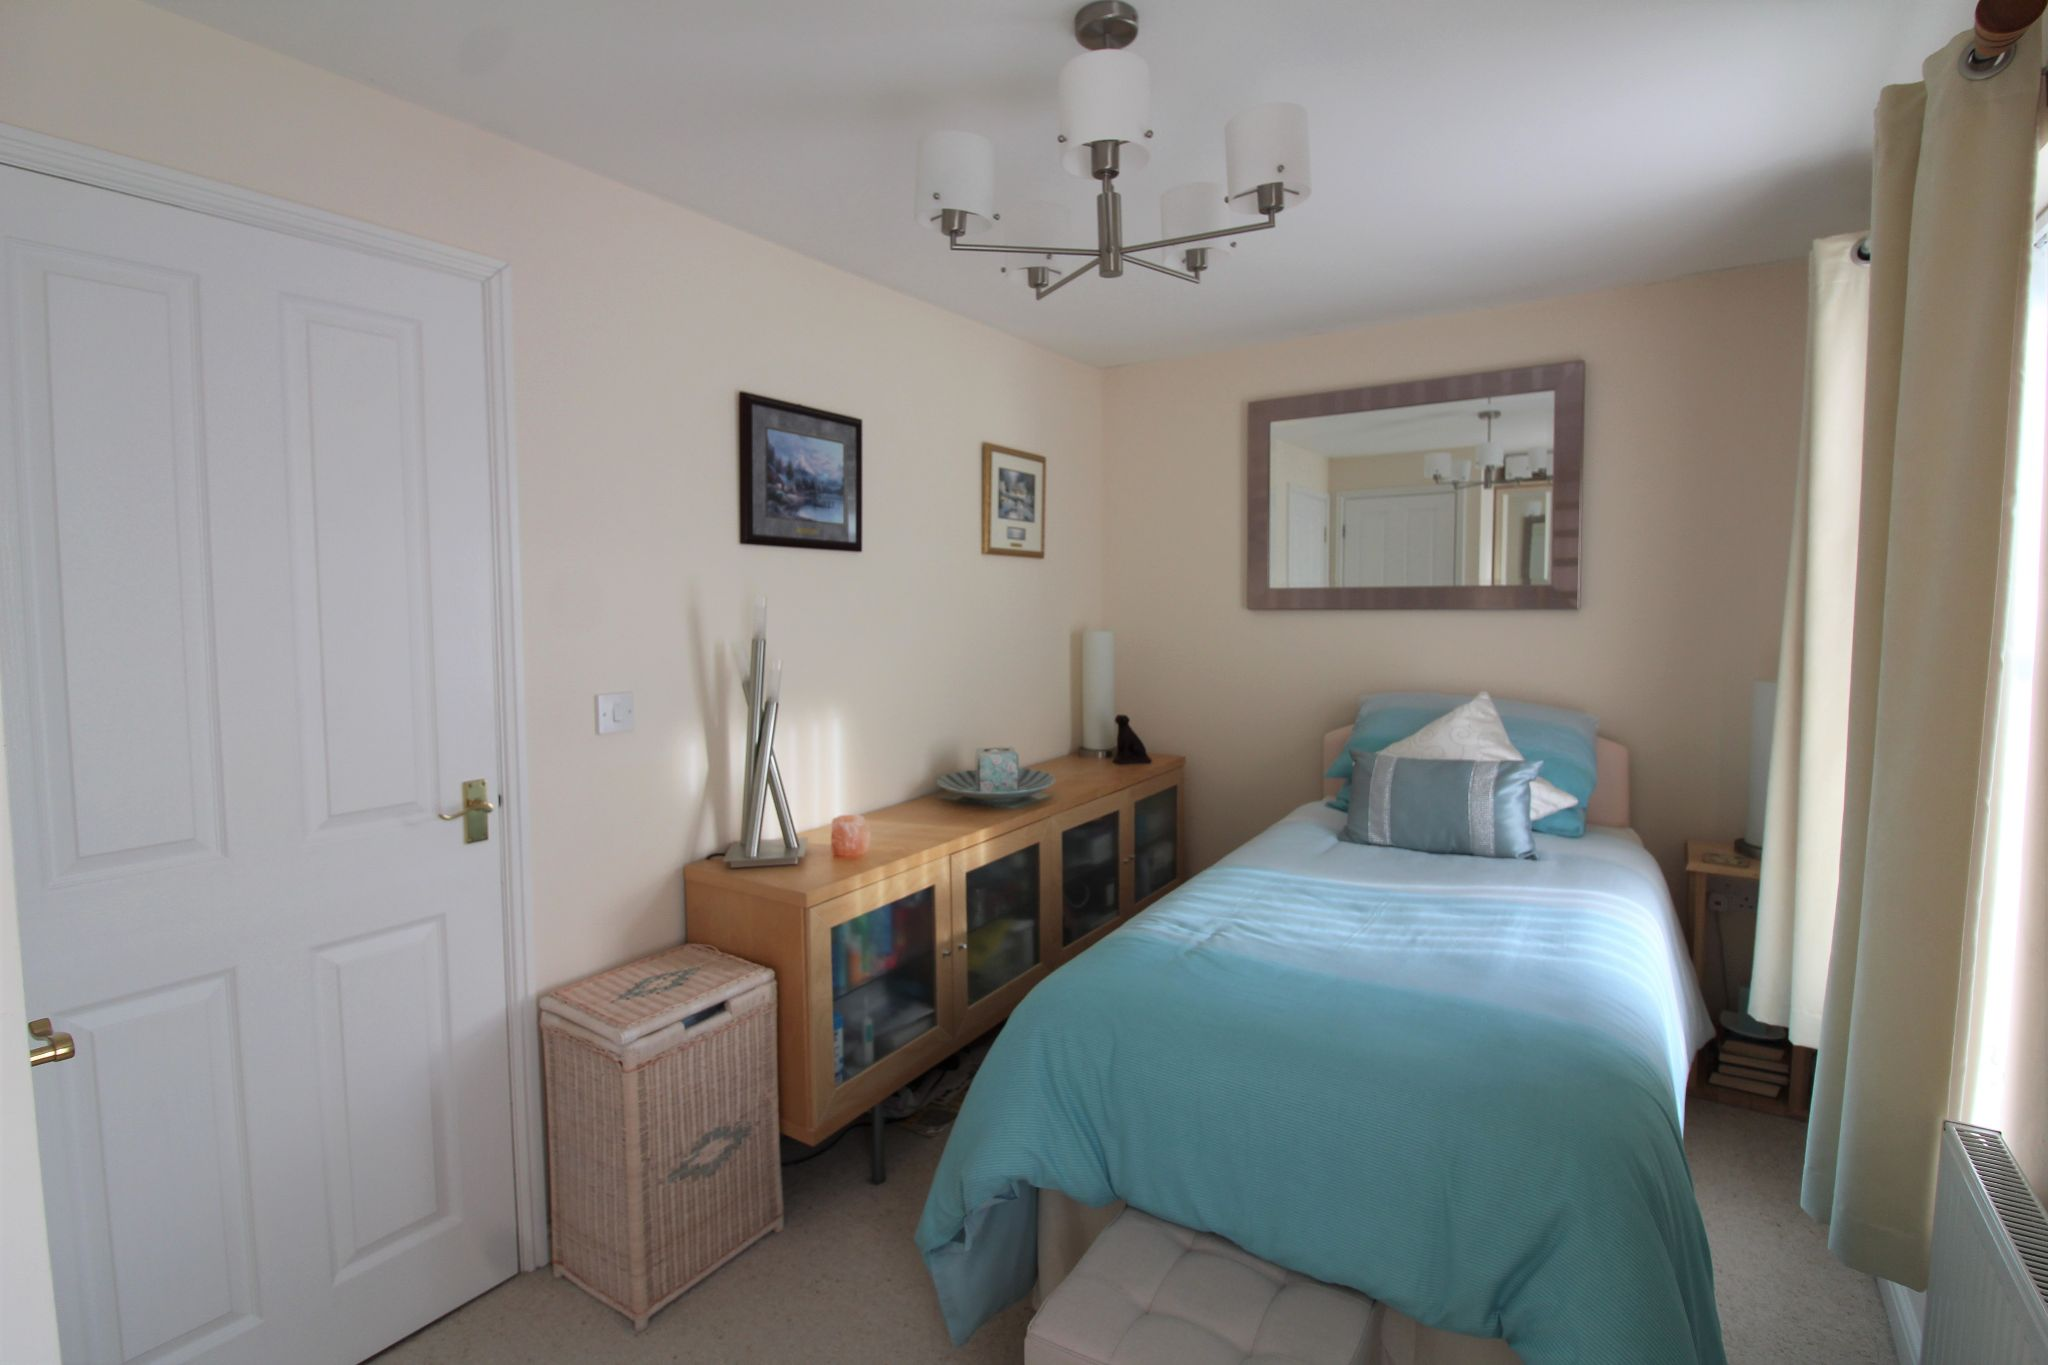 2 bedroom semi-detached house For Sale in Durham - Photograph 34.